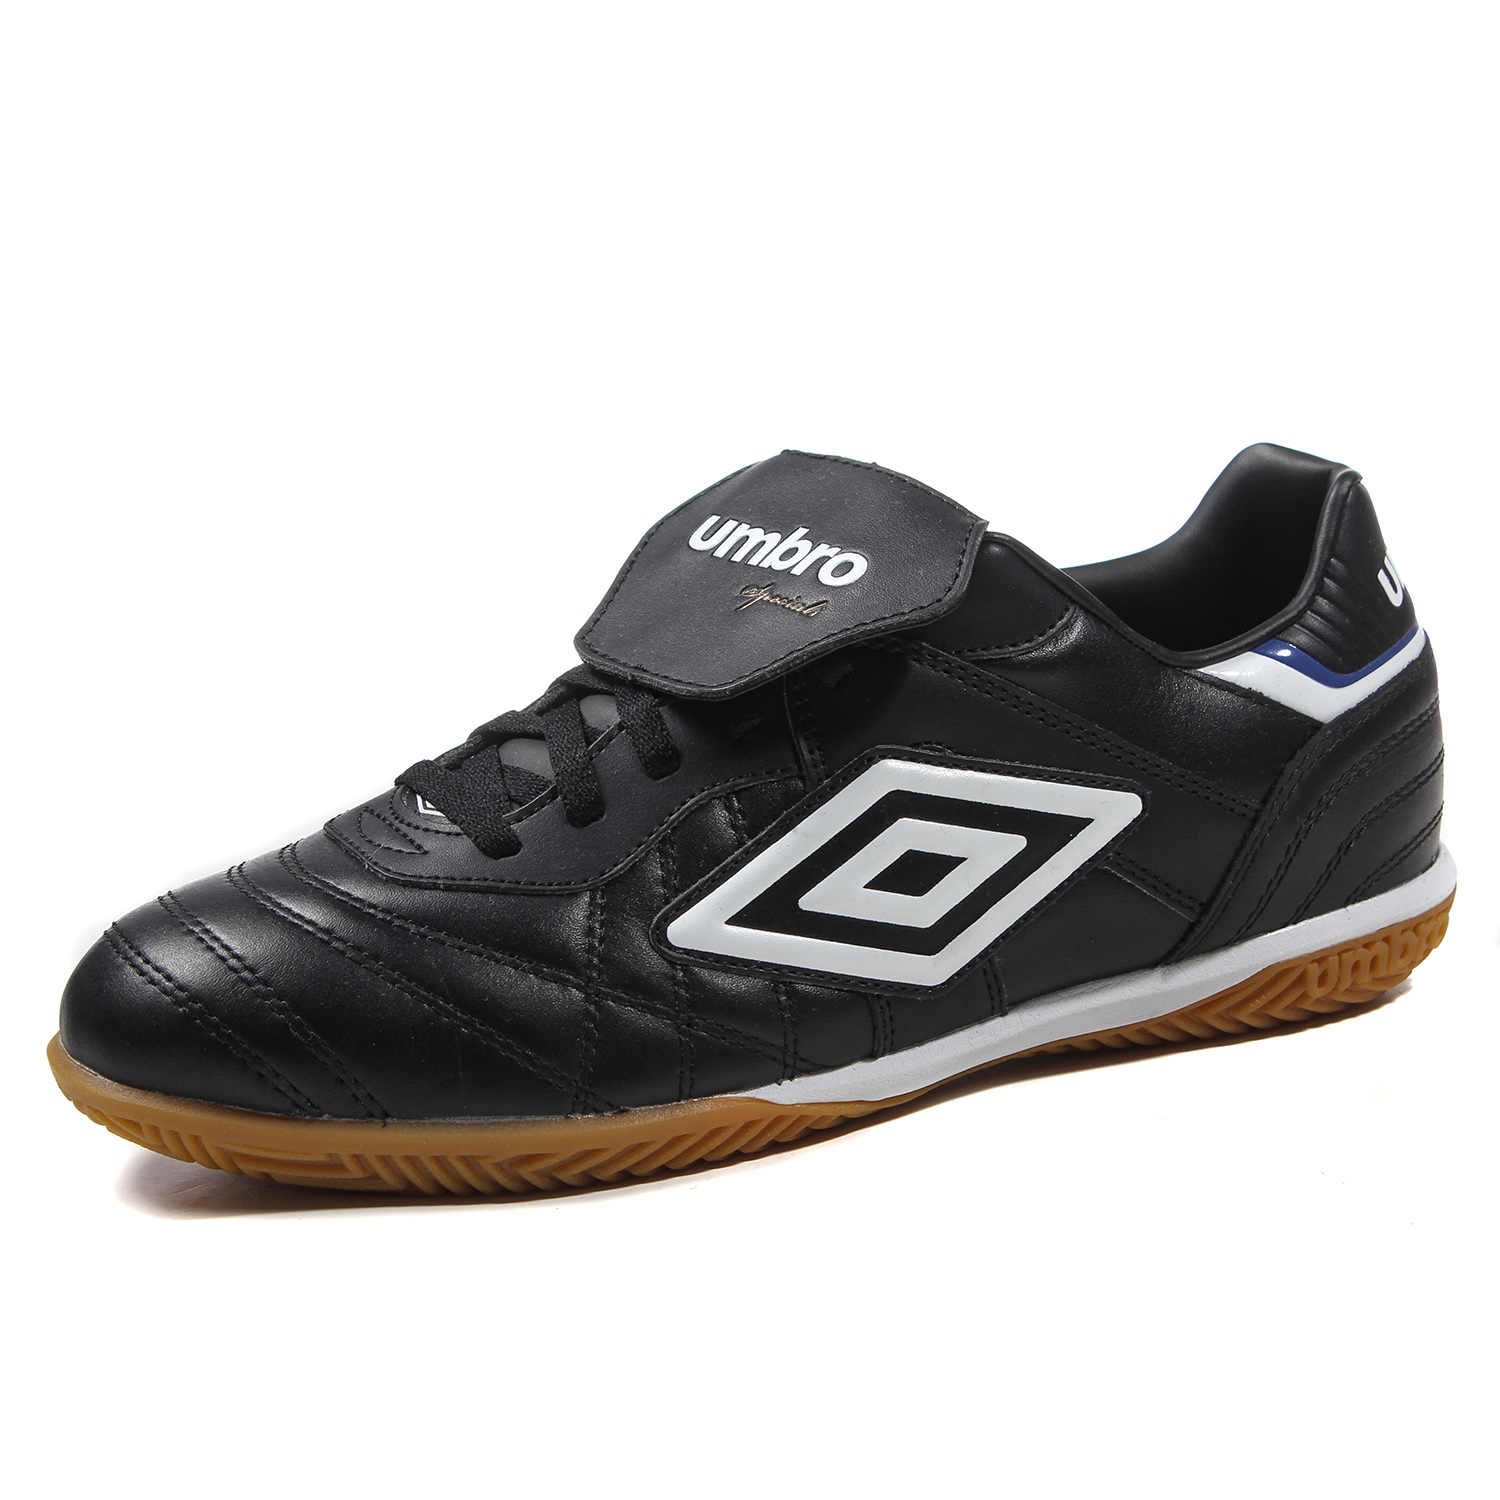 2bd6c4541 ... Umbro Men Soccer Shoes Sports Sneaker Indoor Soccer Boots Turf Shoes  Leather Lace-up Professional ...